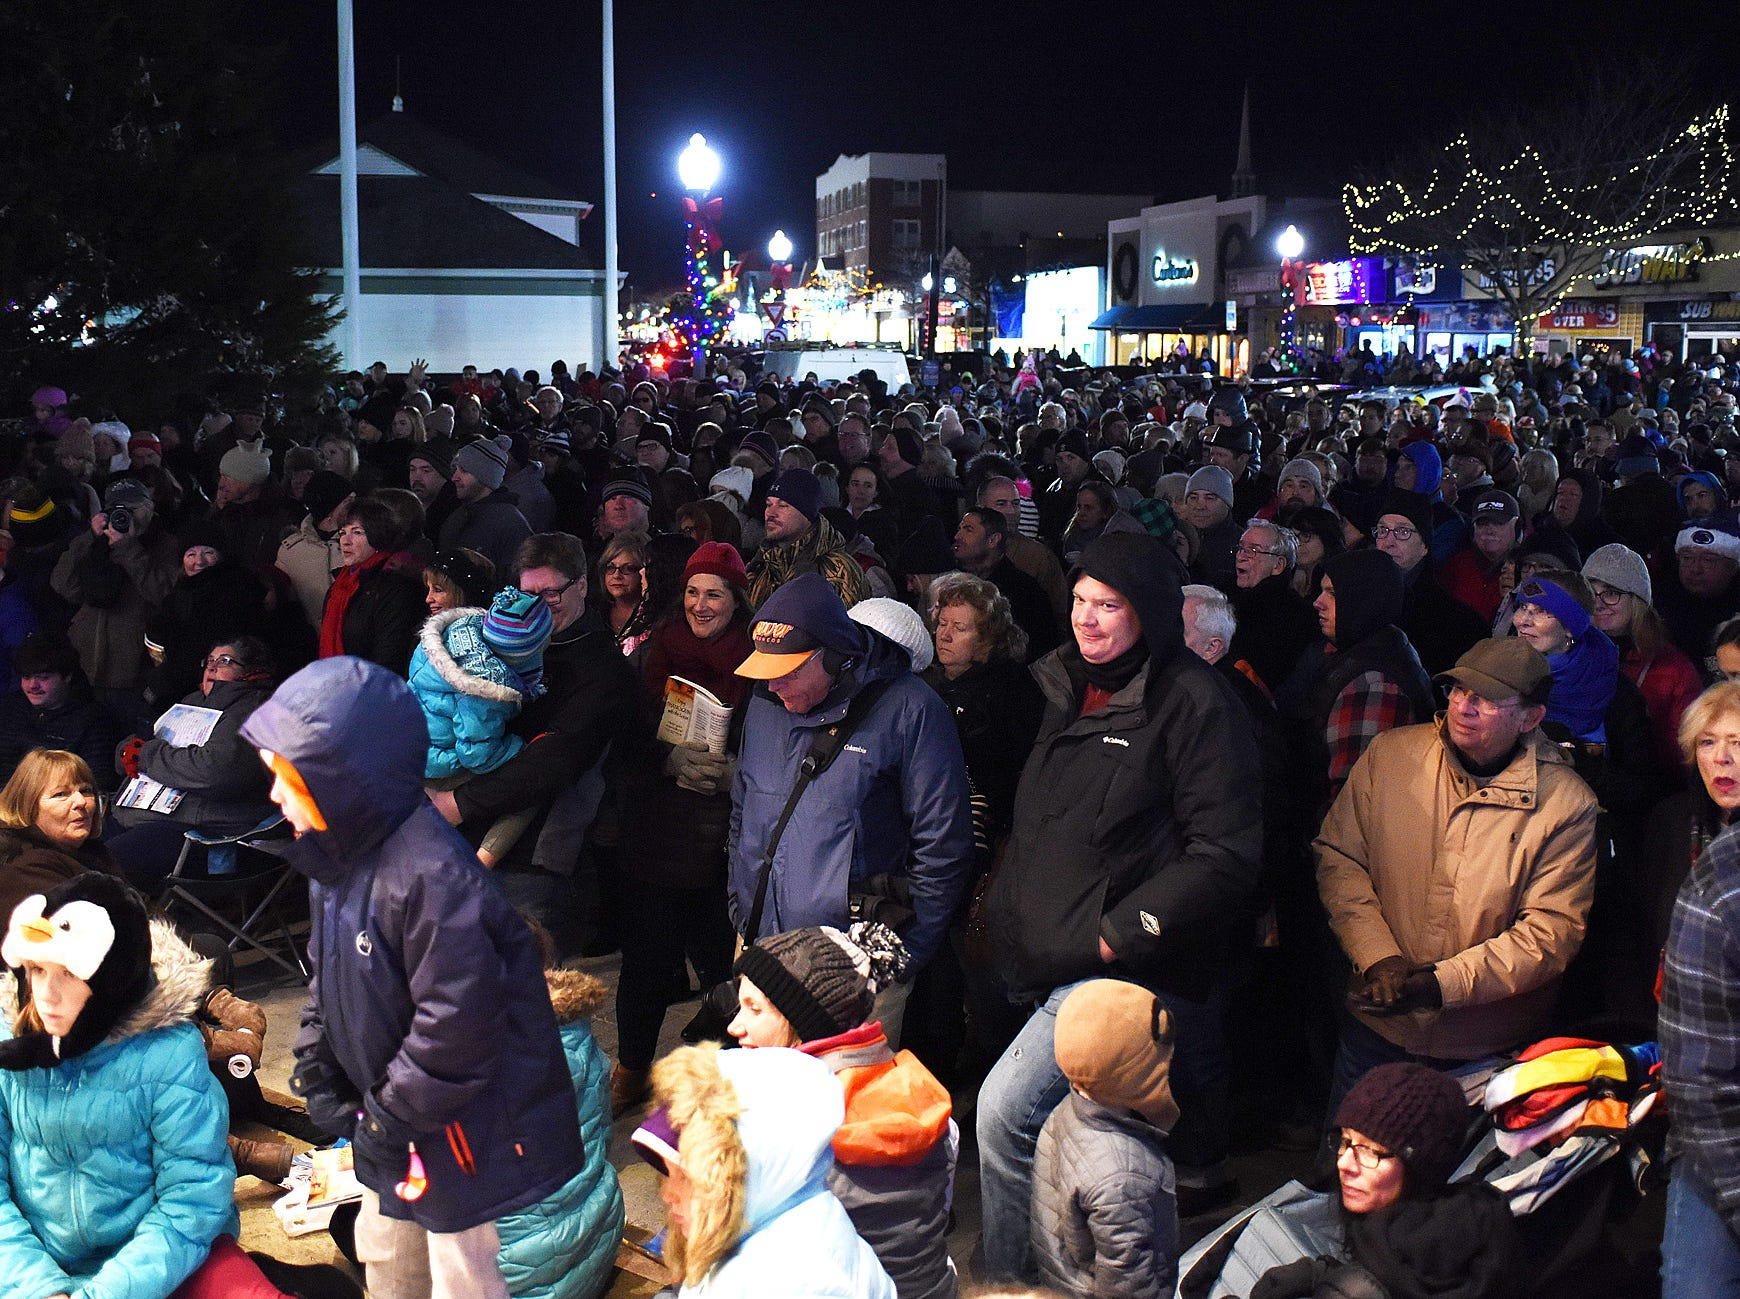 Under a full moon, several thousand visitors came out in the cold to sing Christmas carols and light Rehoboth Beach's Christmas tree on Friday night in downtown Rehoboth Beach. Clear Space Theater provided the musical selections as the tree donated by Pat and Paul Romaine was decorated with hundreds of lights.